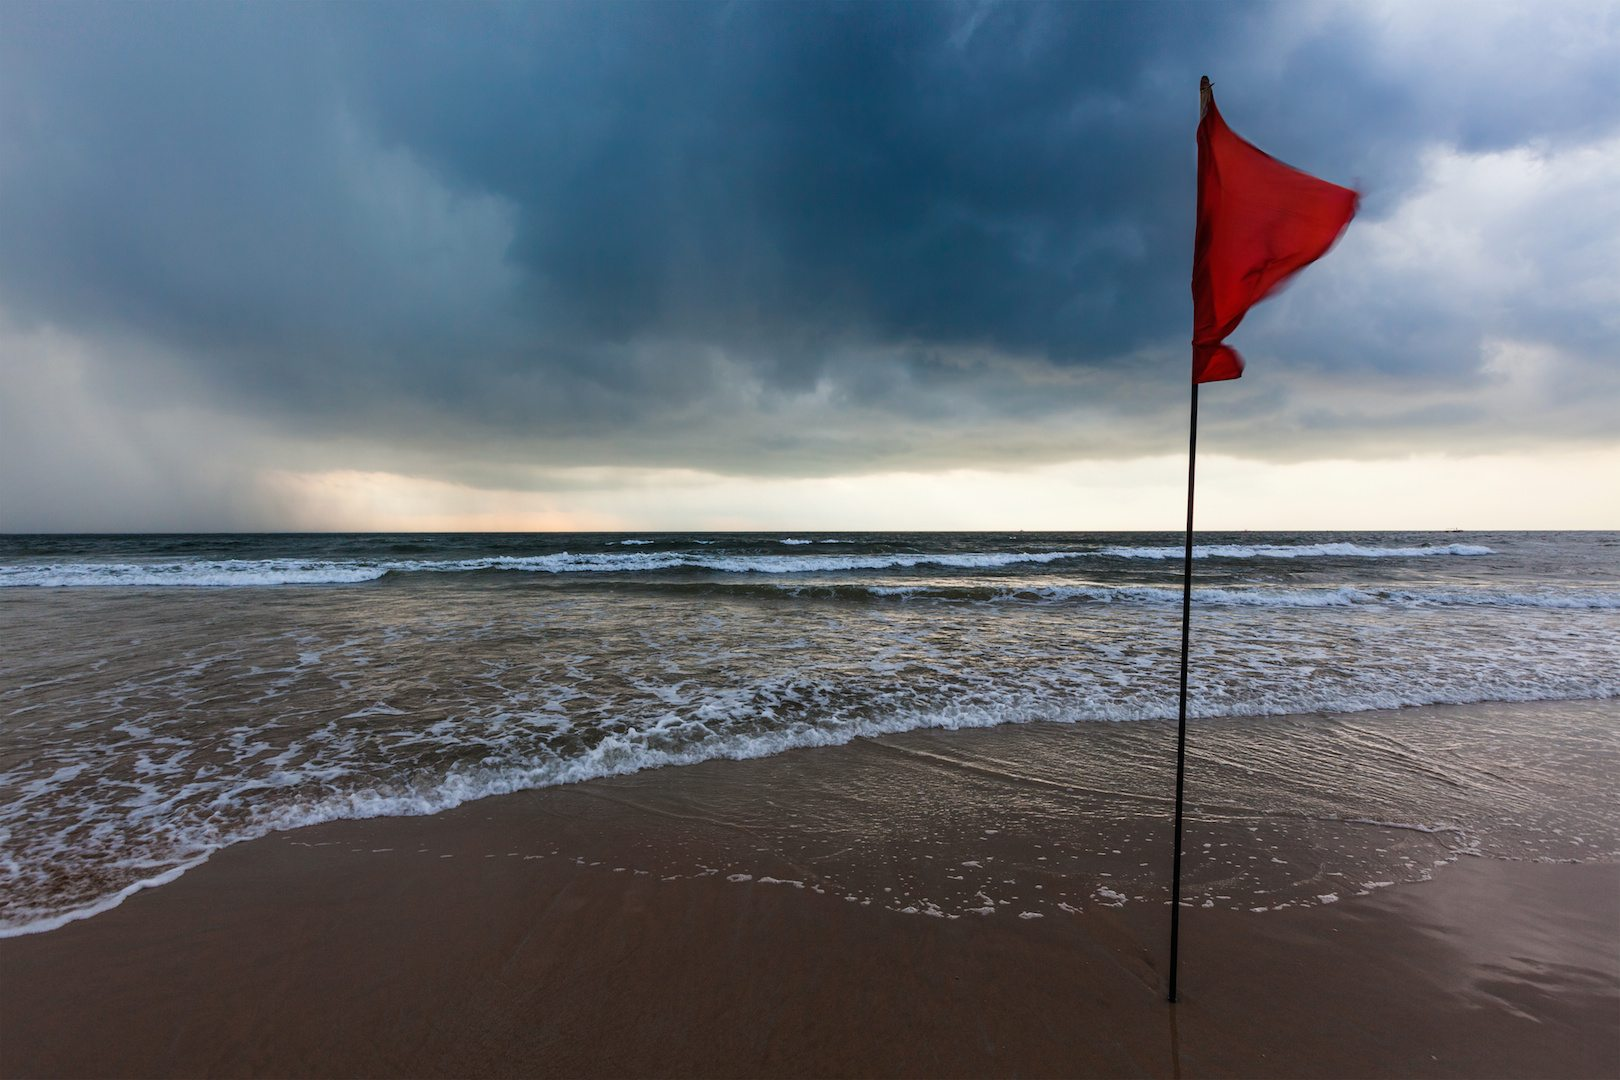 relational red flags Warning Flag AdobeStock_71489472 copy